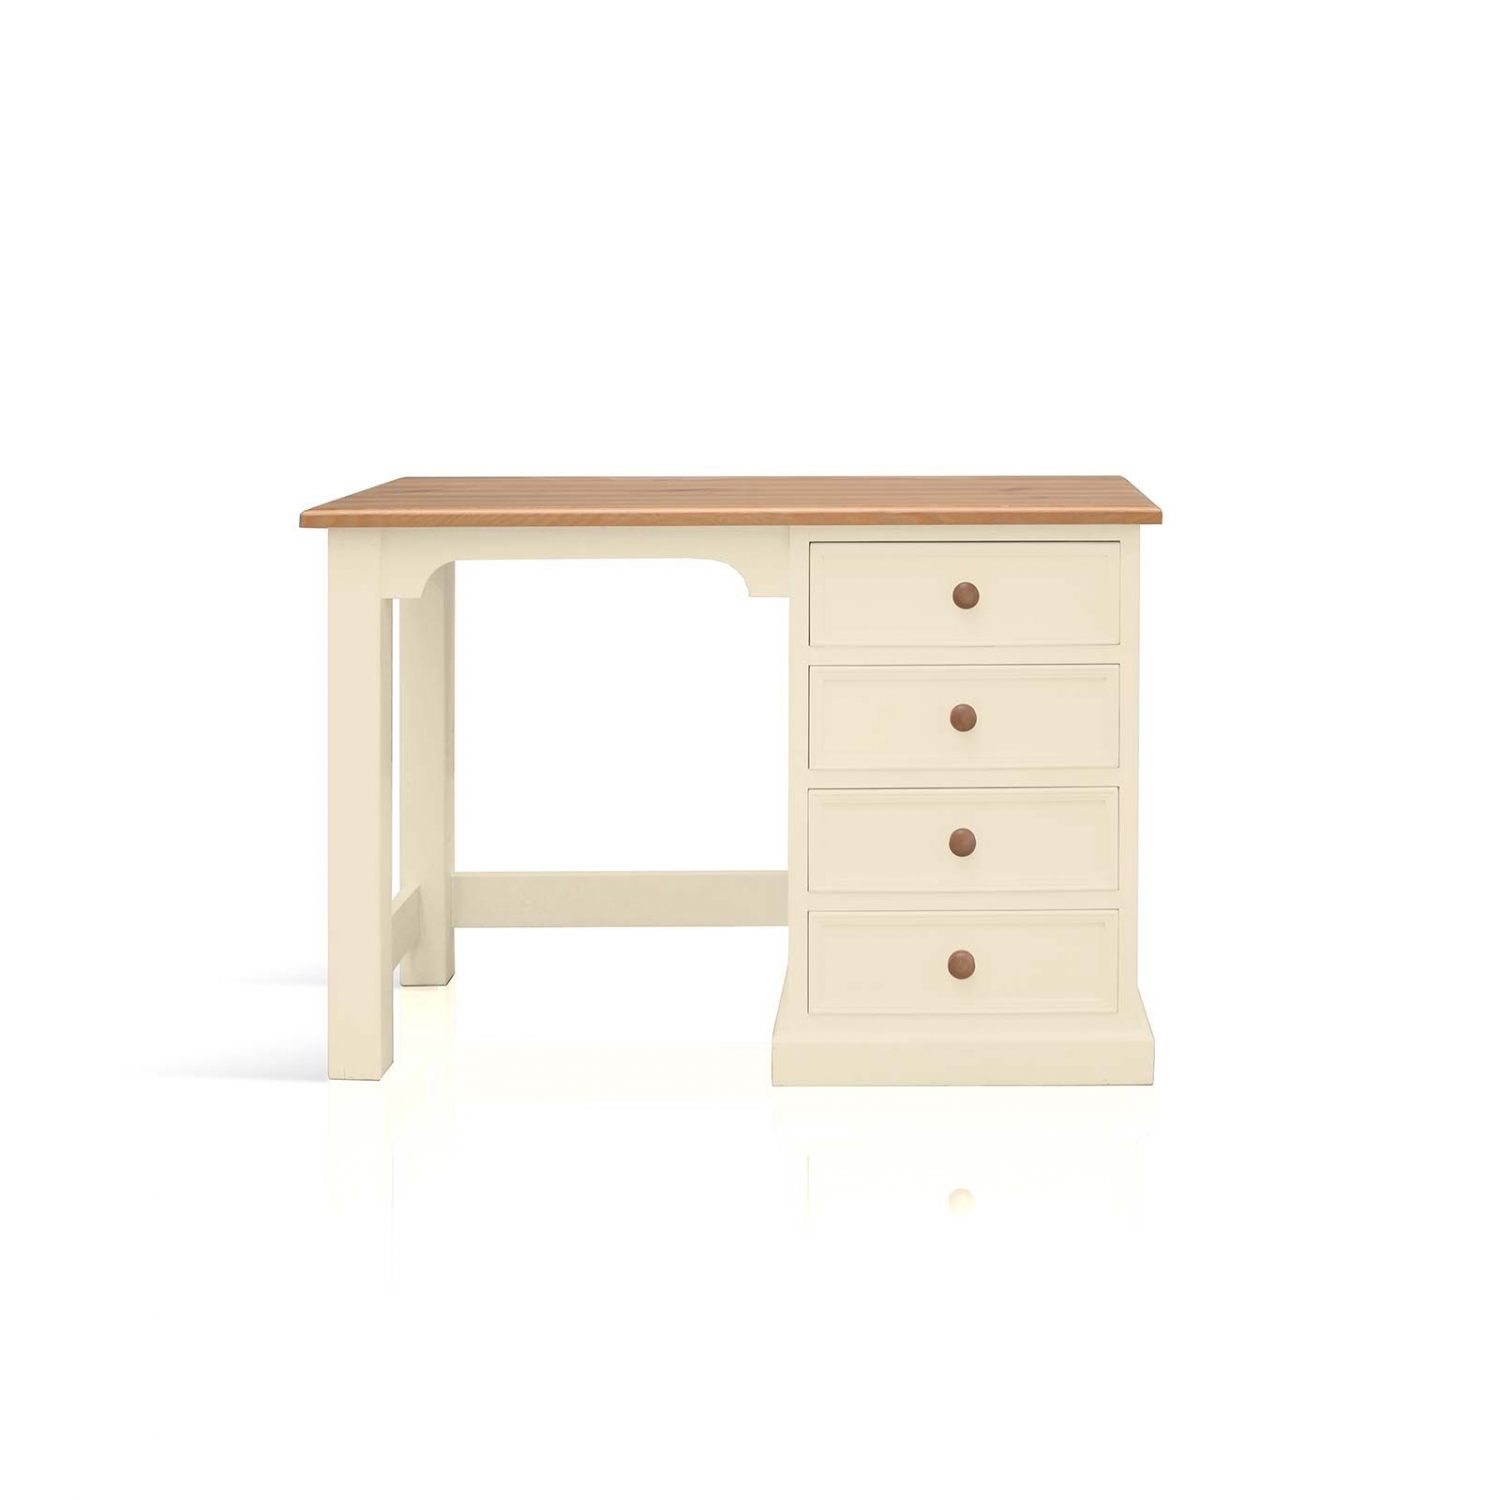 Harrogate Cream Painted Pine Furniture Small Pc Office Computer Desk